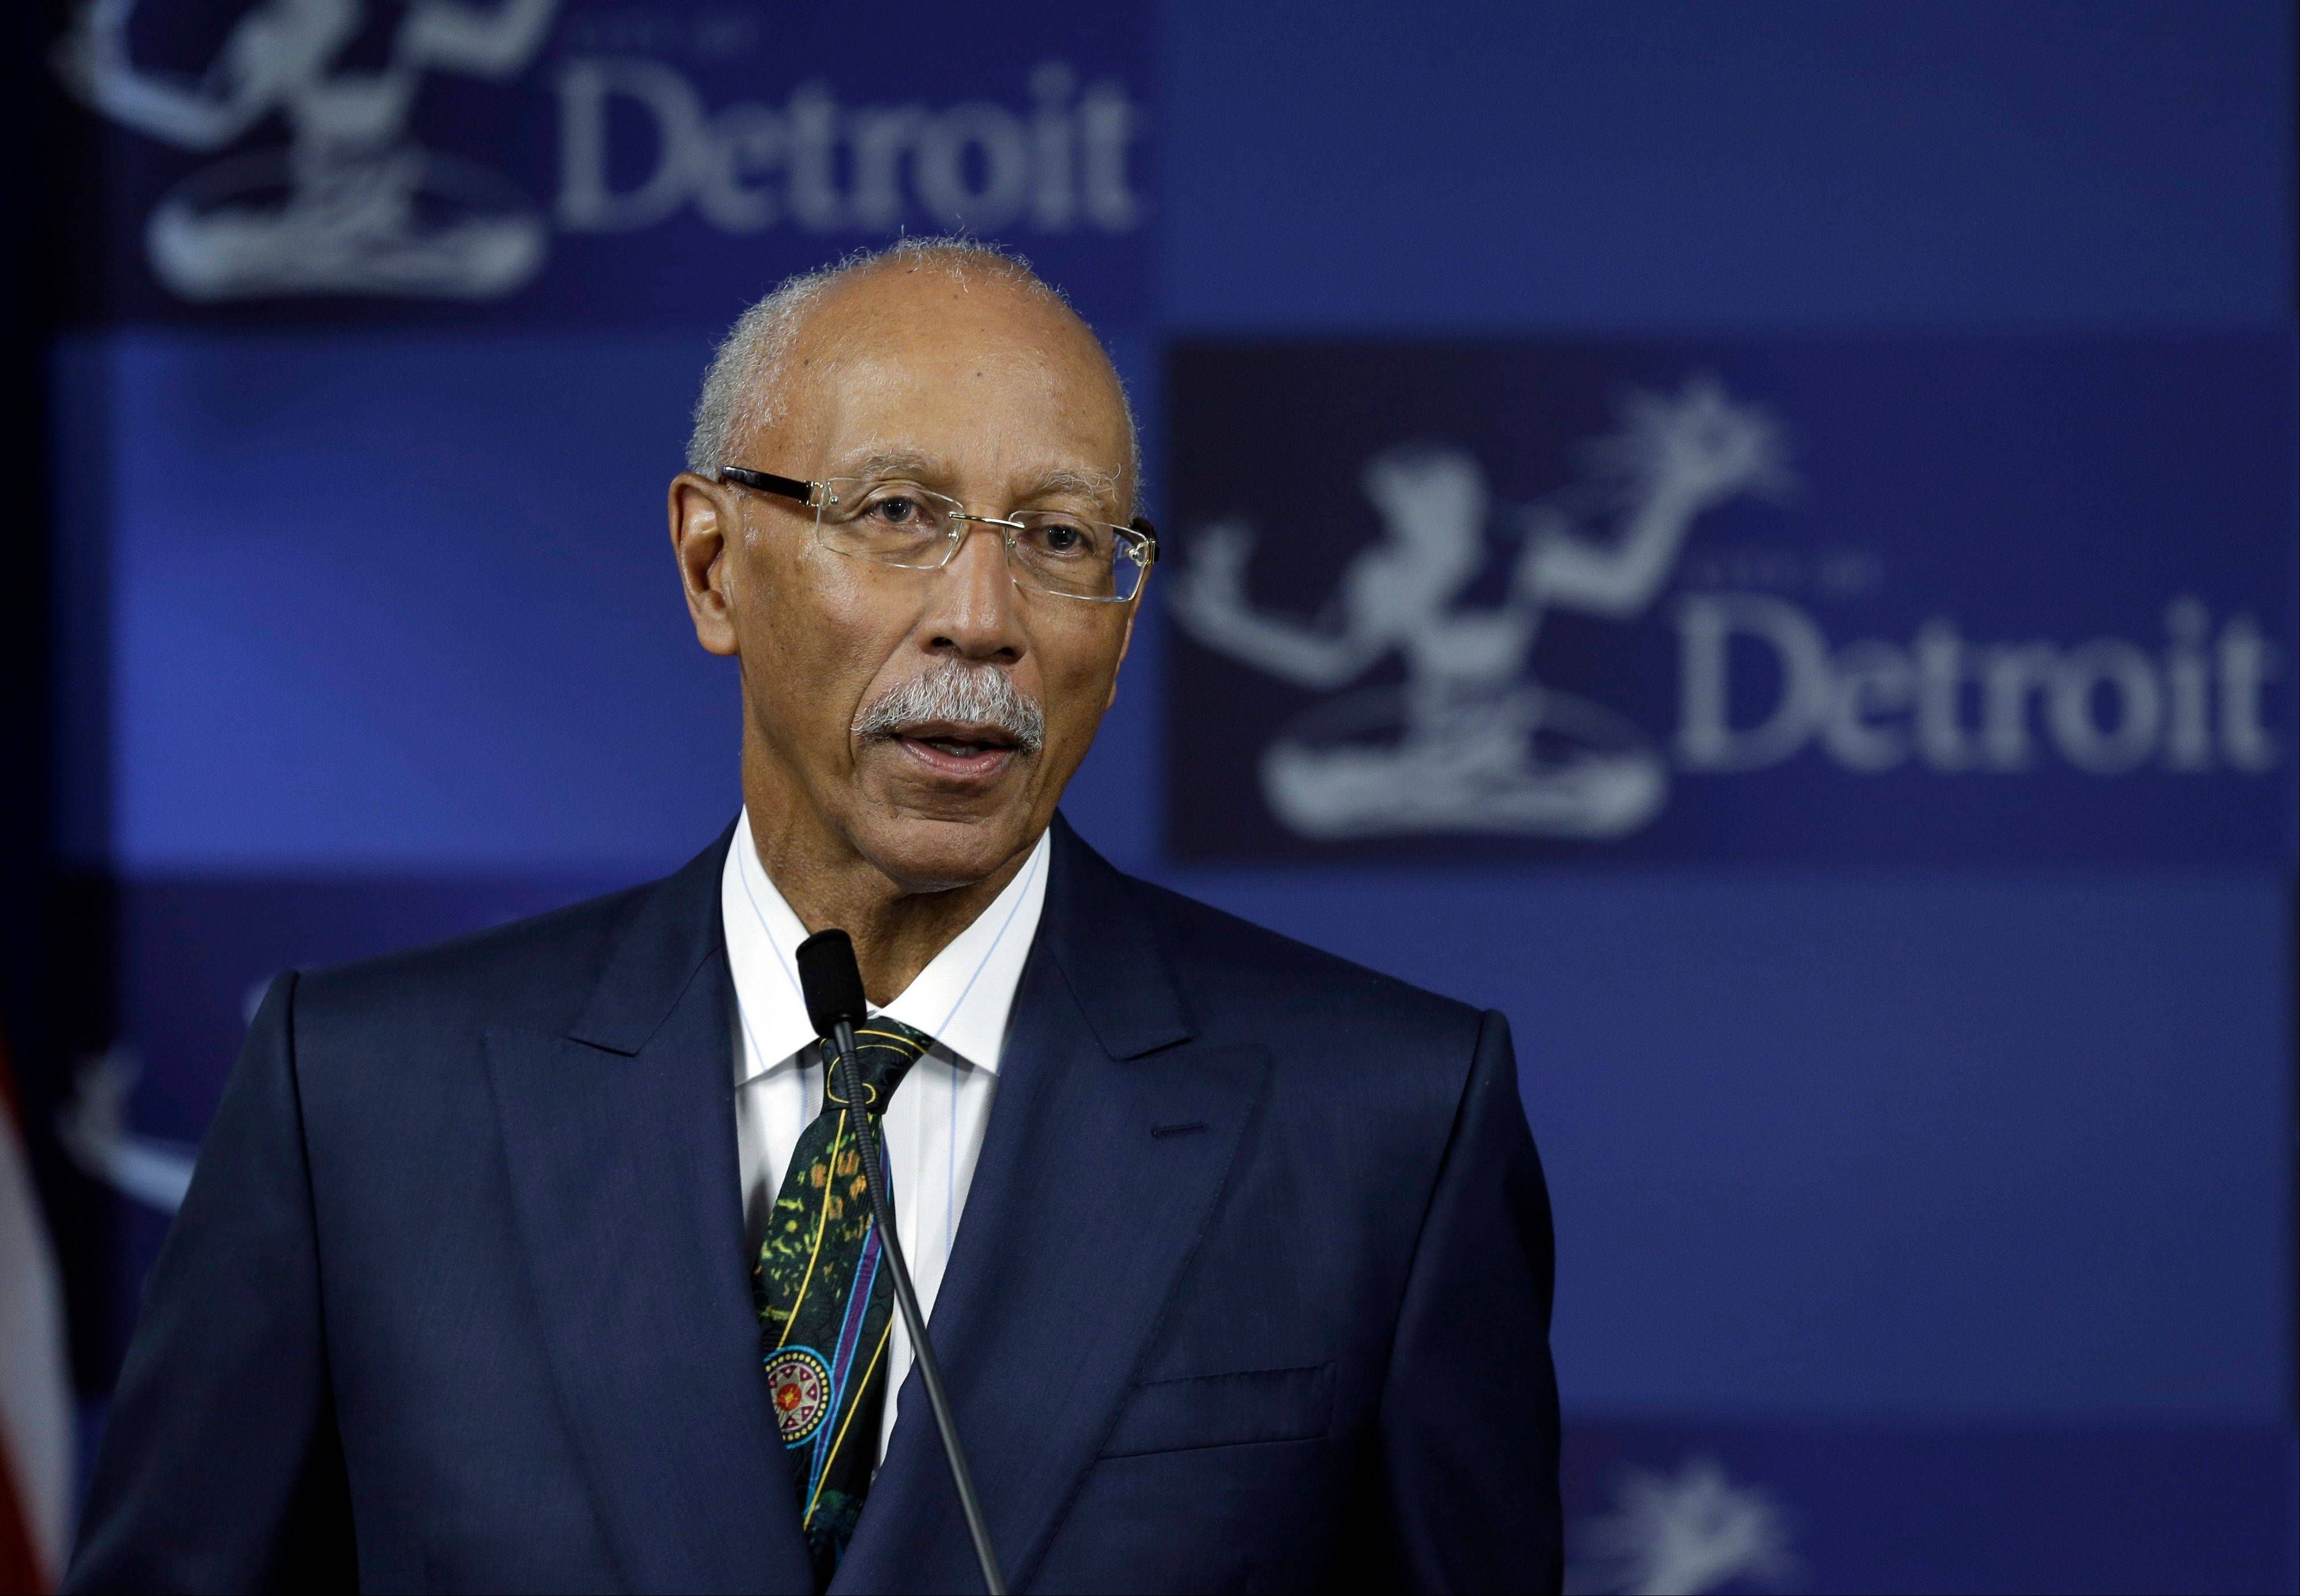 Detroit Mayor Dave Bing announced Tuesday he won�t seek a second term as leader of the financially troubled city, which recently became the largest in the country placed under state oversight.